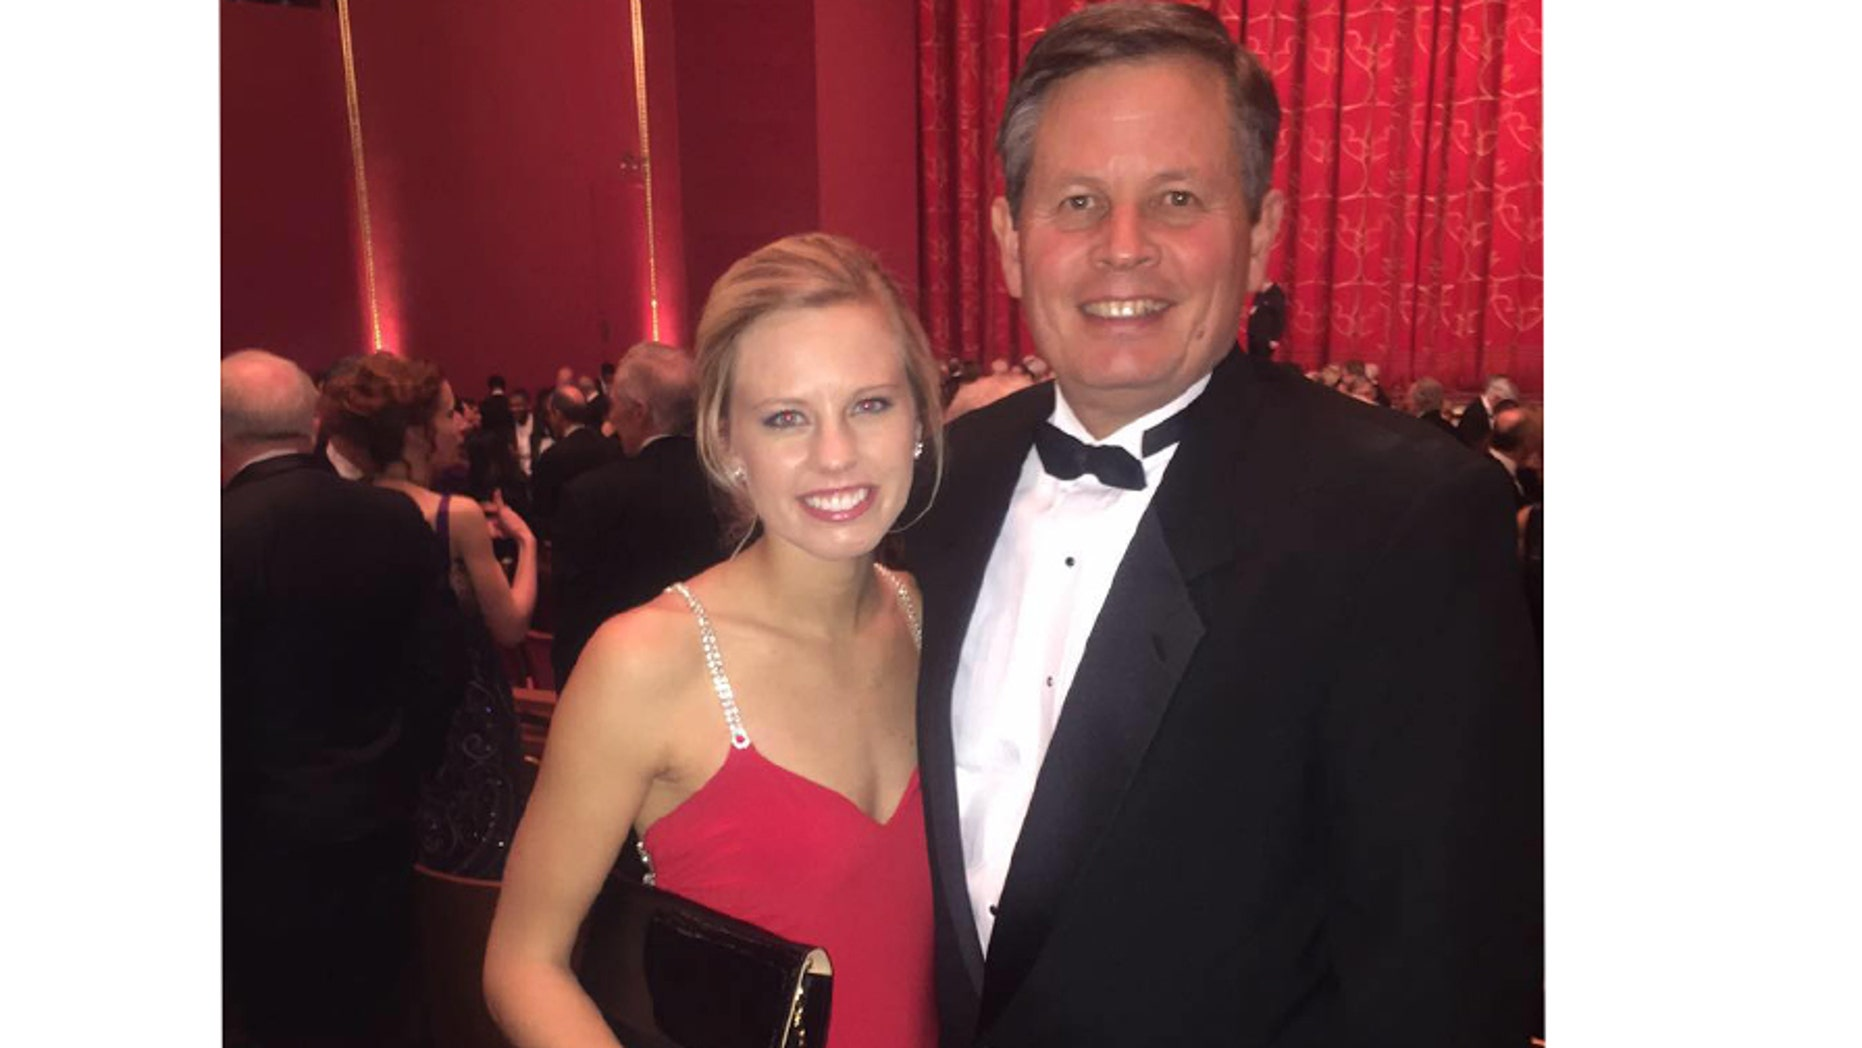 Republican Sen. Steve Daines, right, will attend his daughter Annie's wedding, left, on Saturday in Montana. He will be back at the Capitol to vote to confirm Judge Kavanaugh to the high court if his vote is needed.